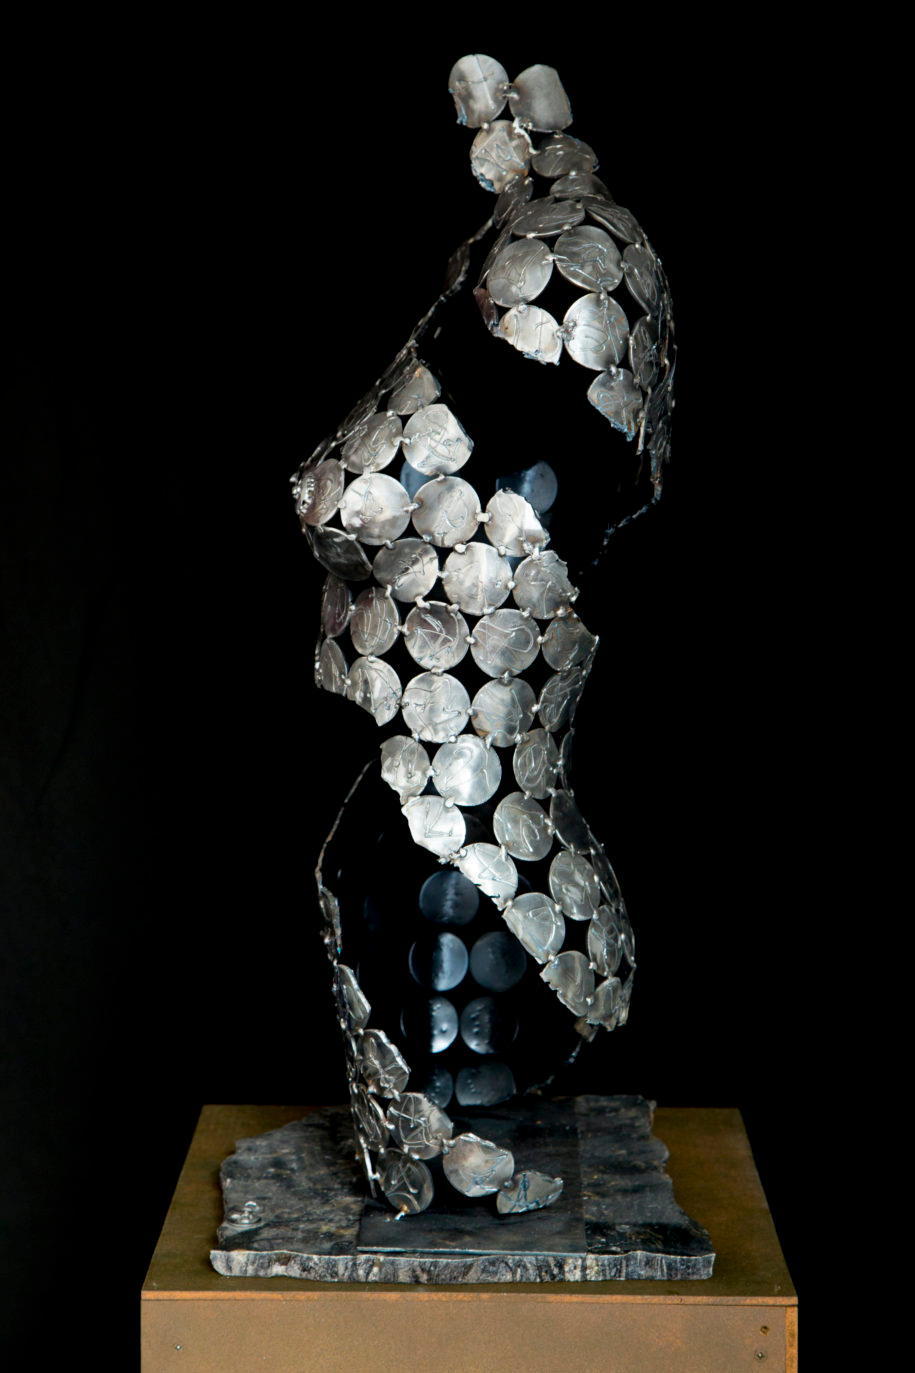 Metal Sculptures For Sale Made from Welded Steel in Spain